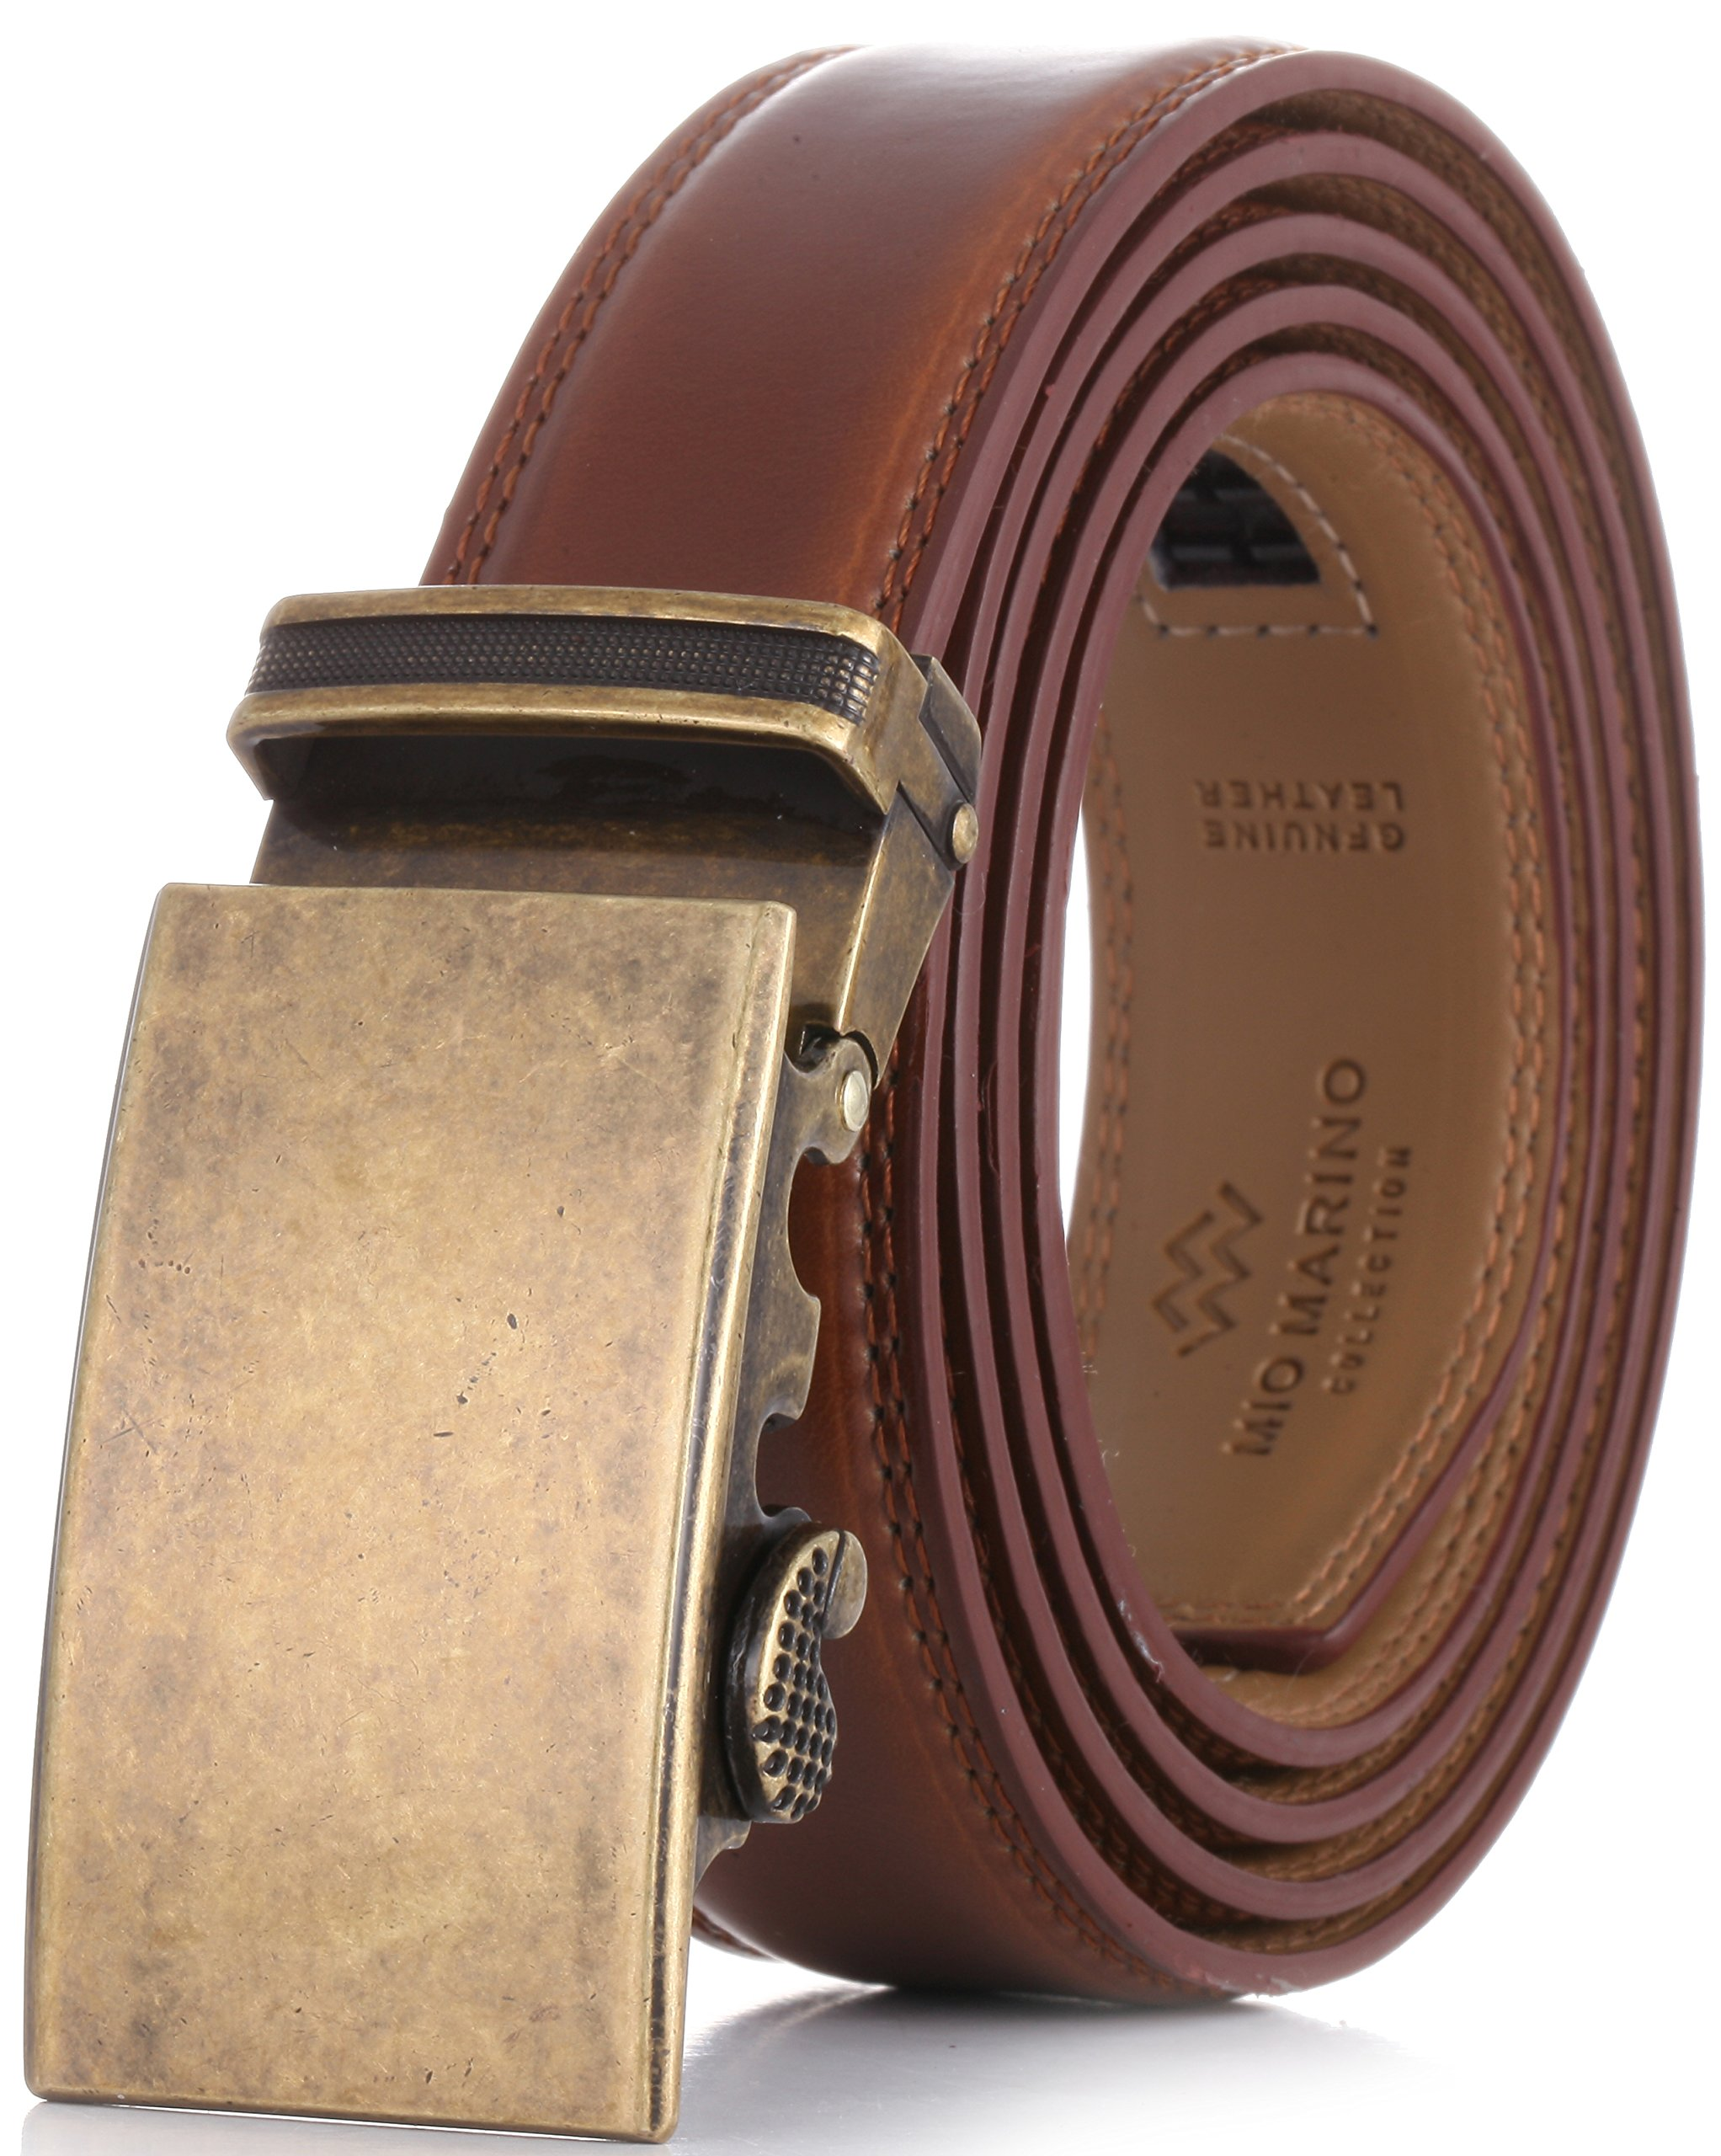 Marino Men's Genuine Leather Ratchet Dress Belt With Automatic Buckle, Enclosed in an Elegant Gift Box - Burnt Umber - Adjustable from 28'' to 44'' Waist